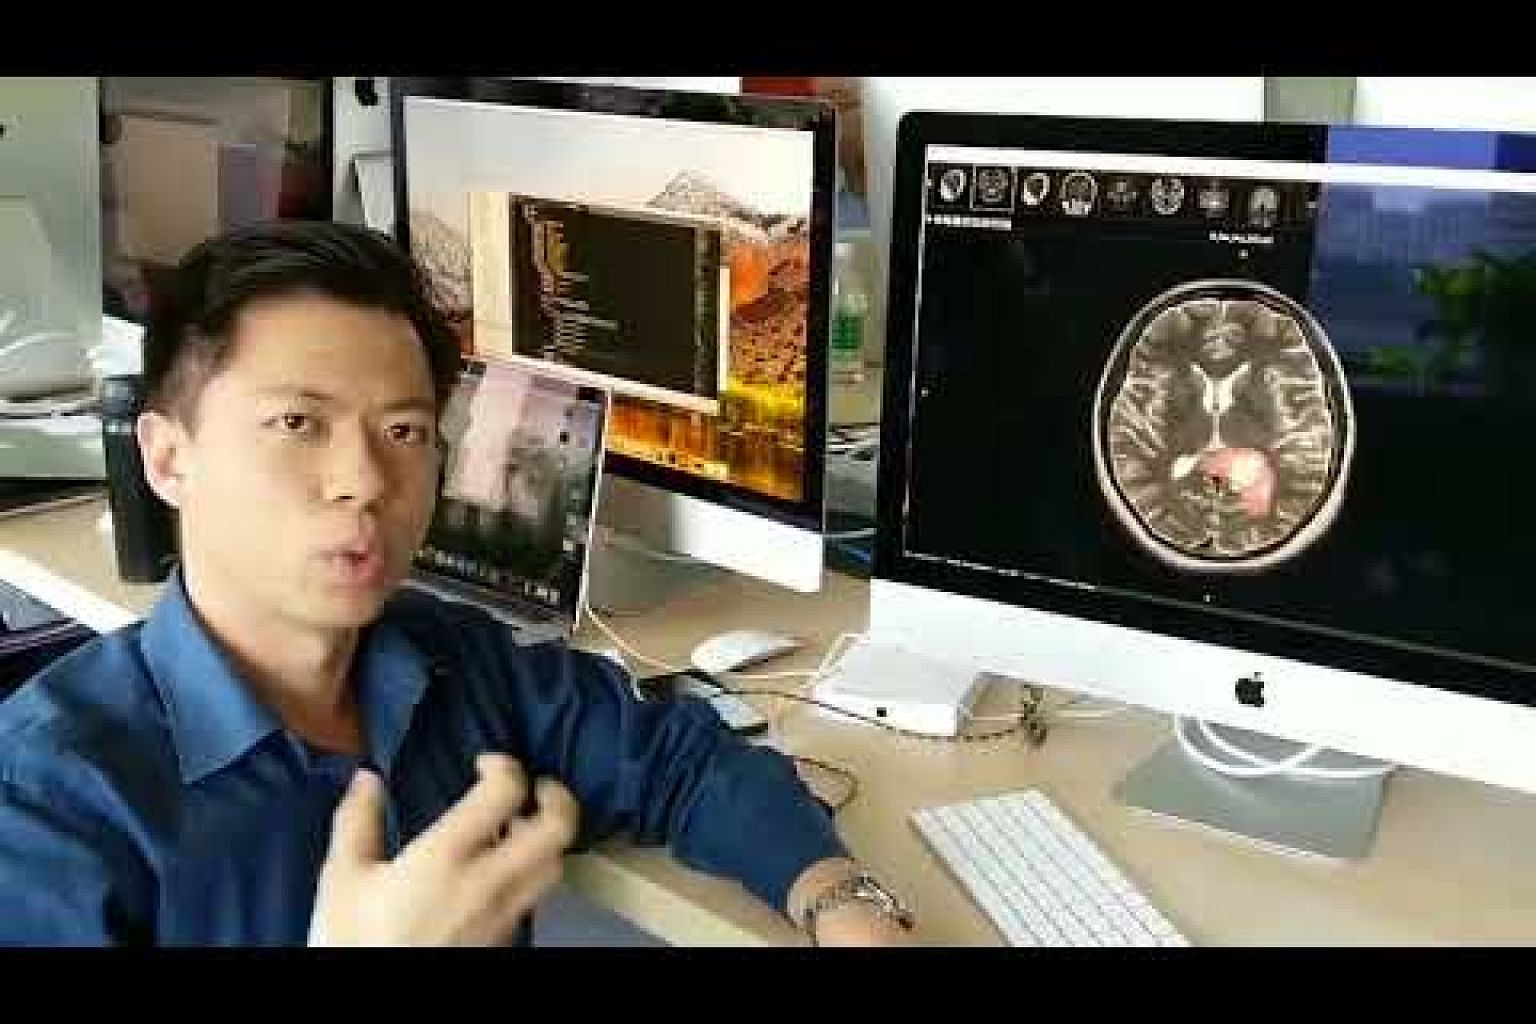 Hanalytics chief Raymond Moh explains how Biomind helps doctors diagnose neurological conditions